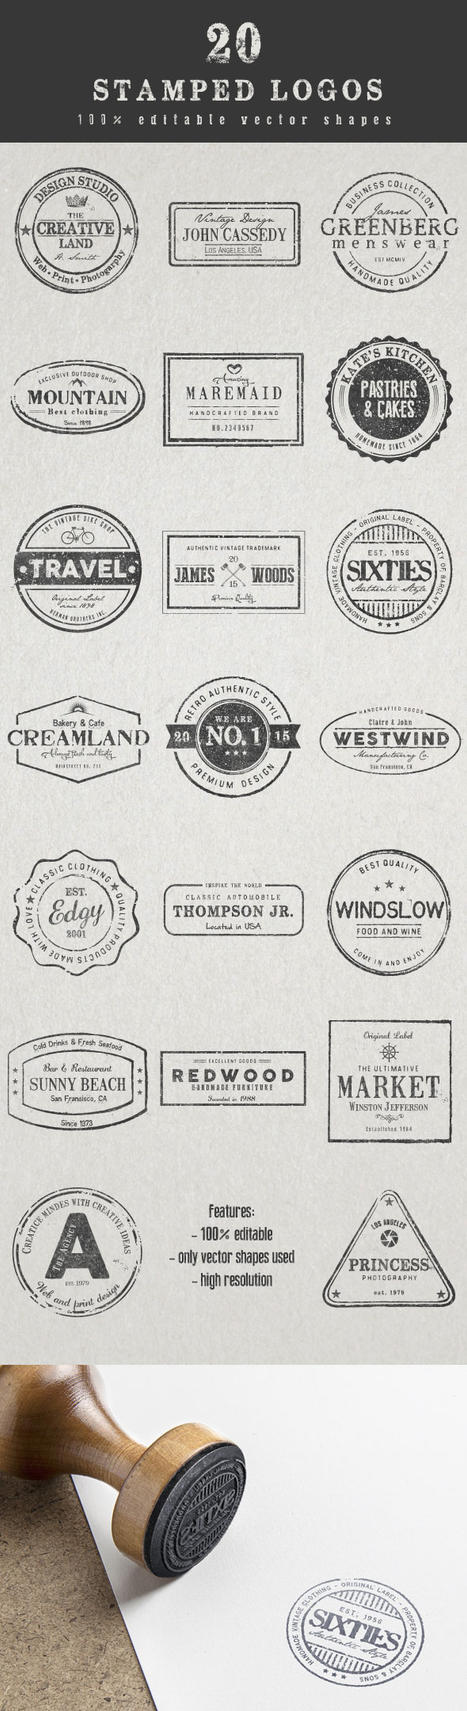 20 stamped Logos by imagearea